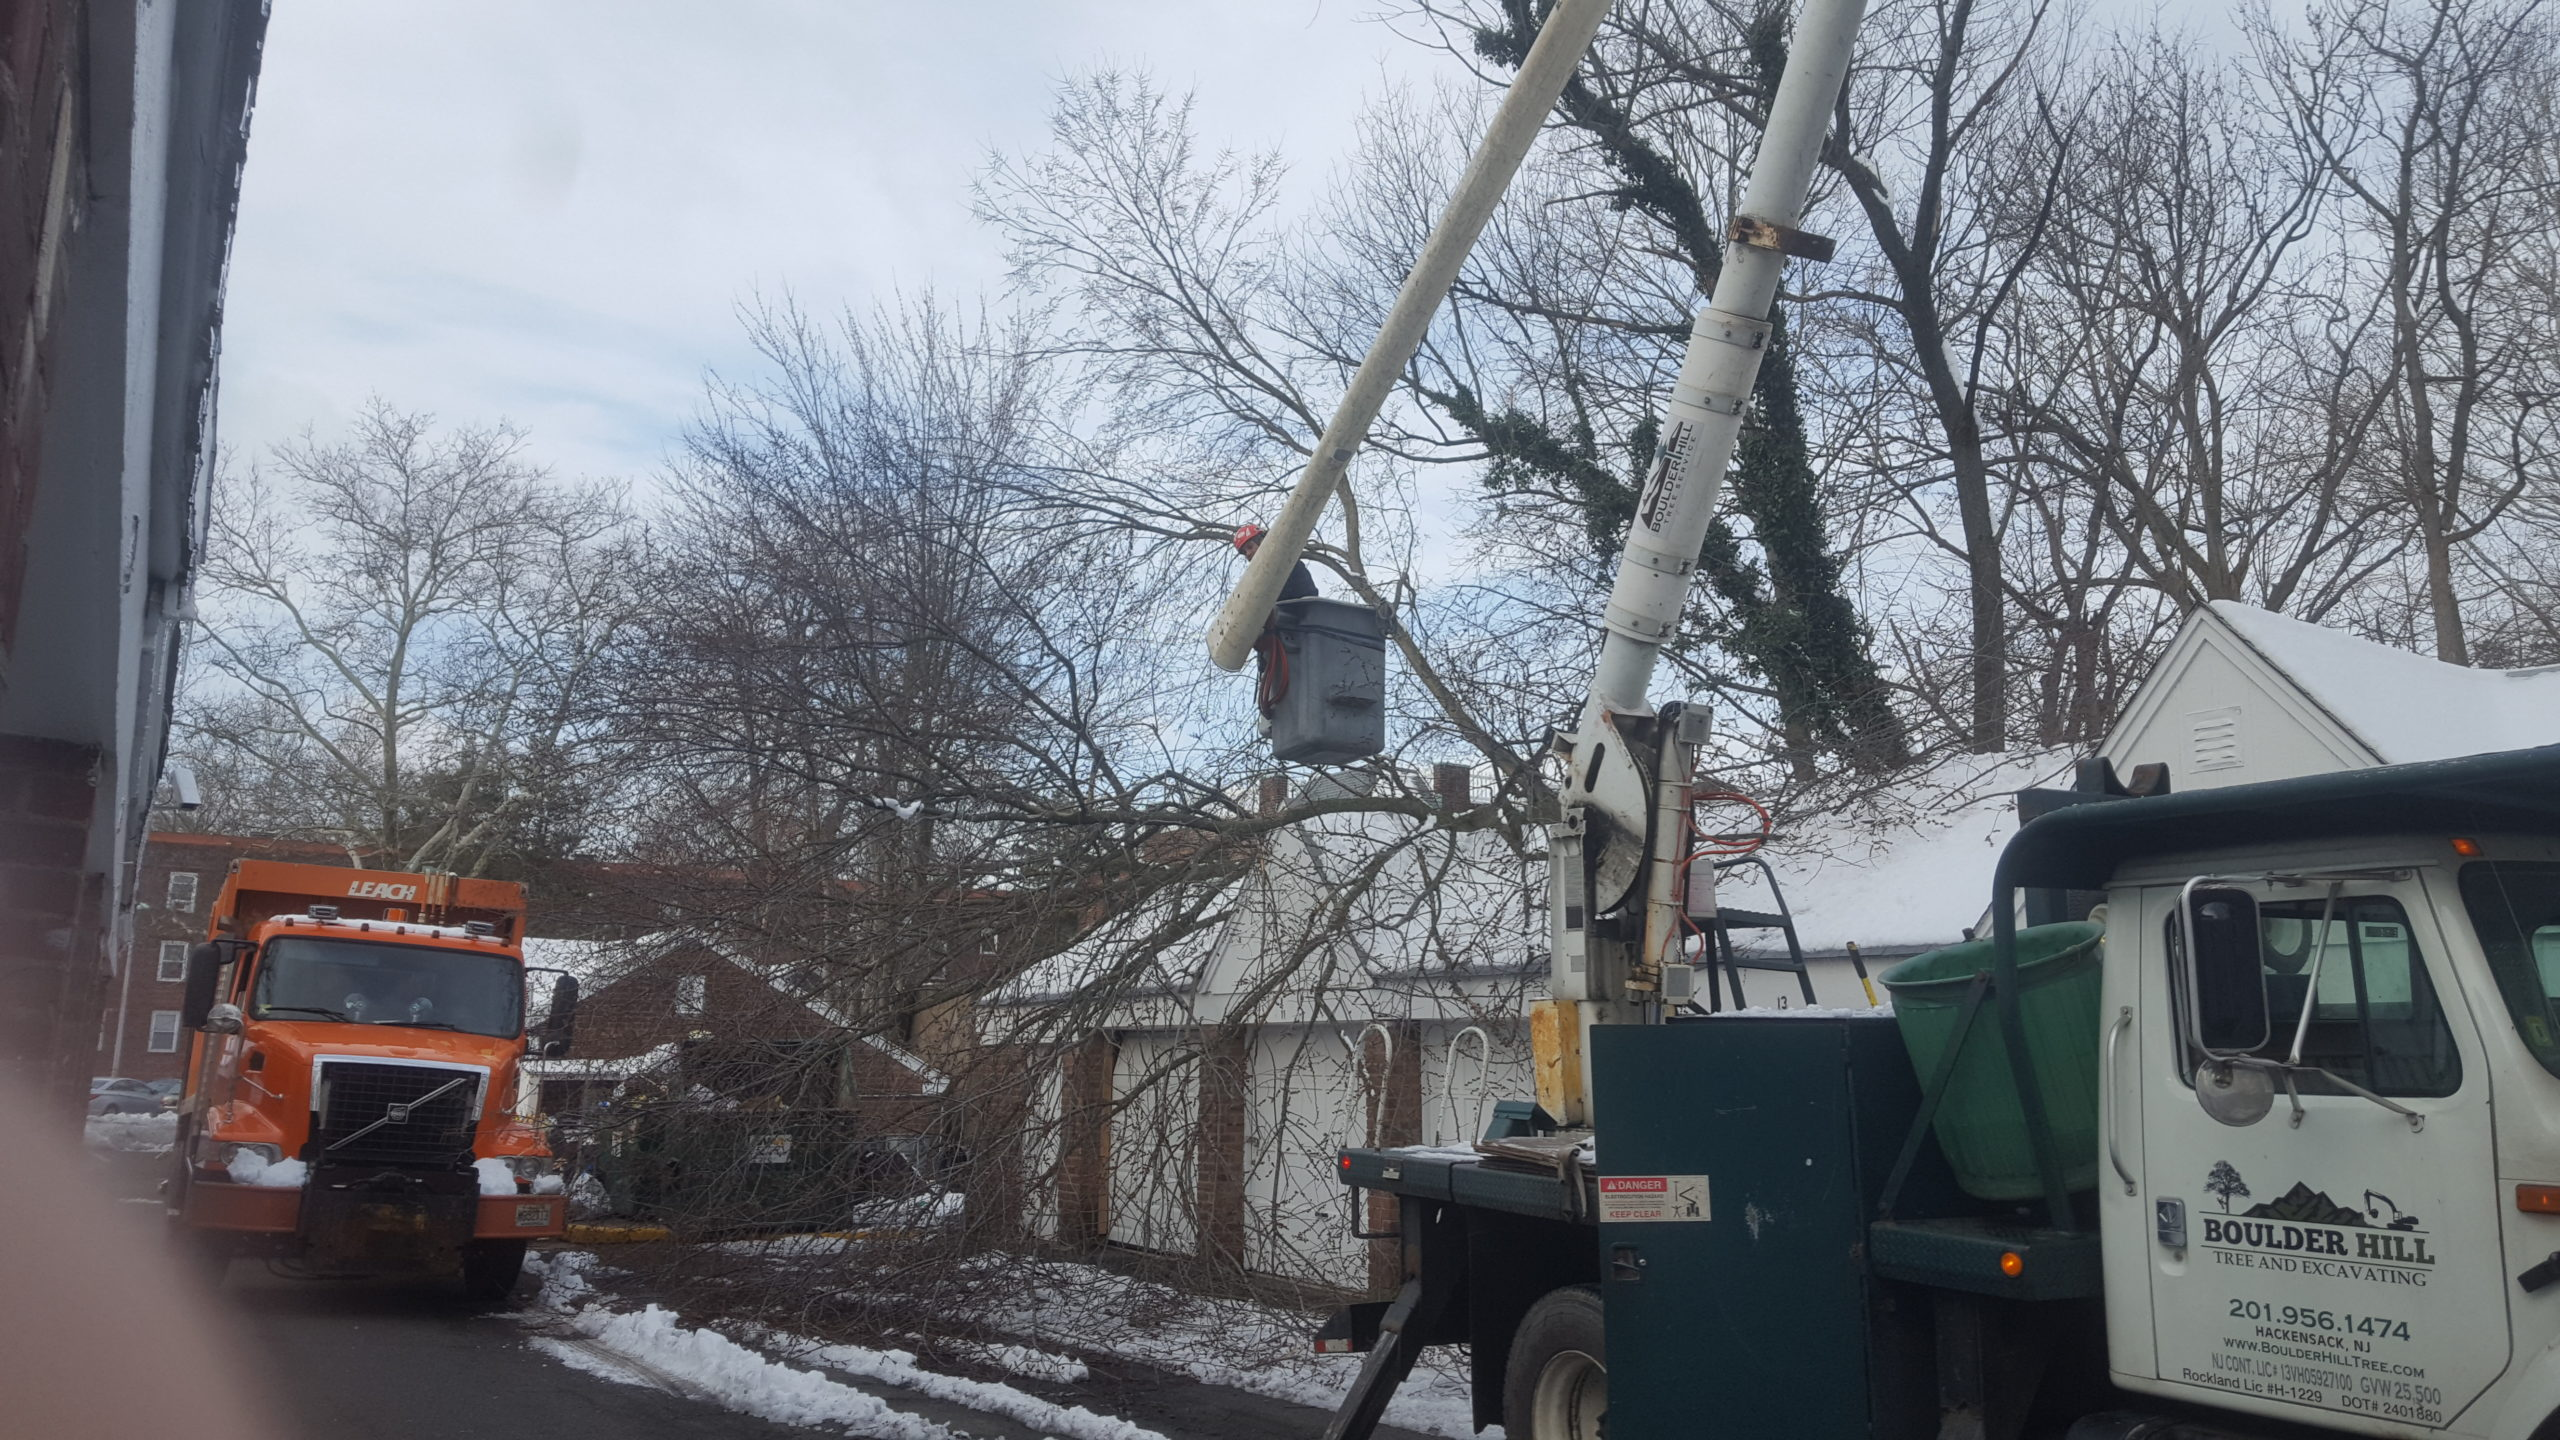 Boulder Hill Tree Pruning Services NJ